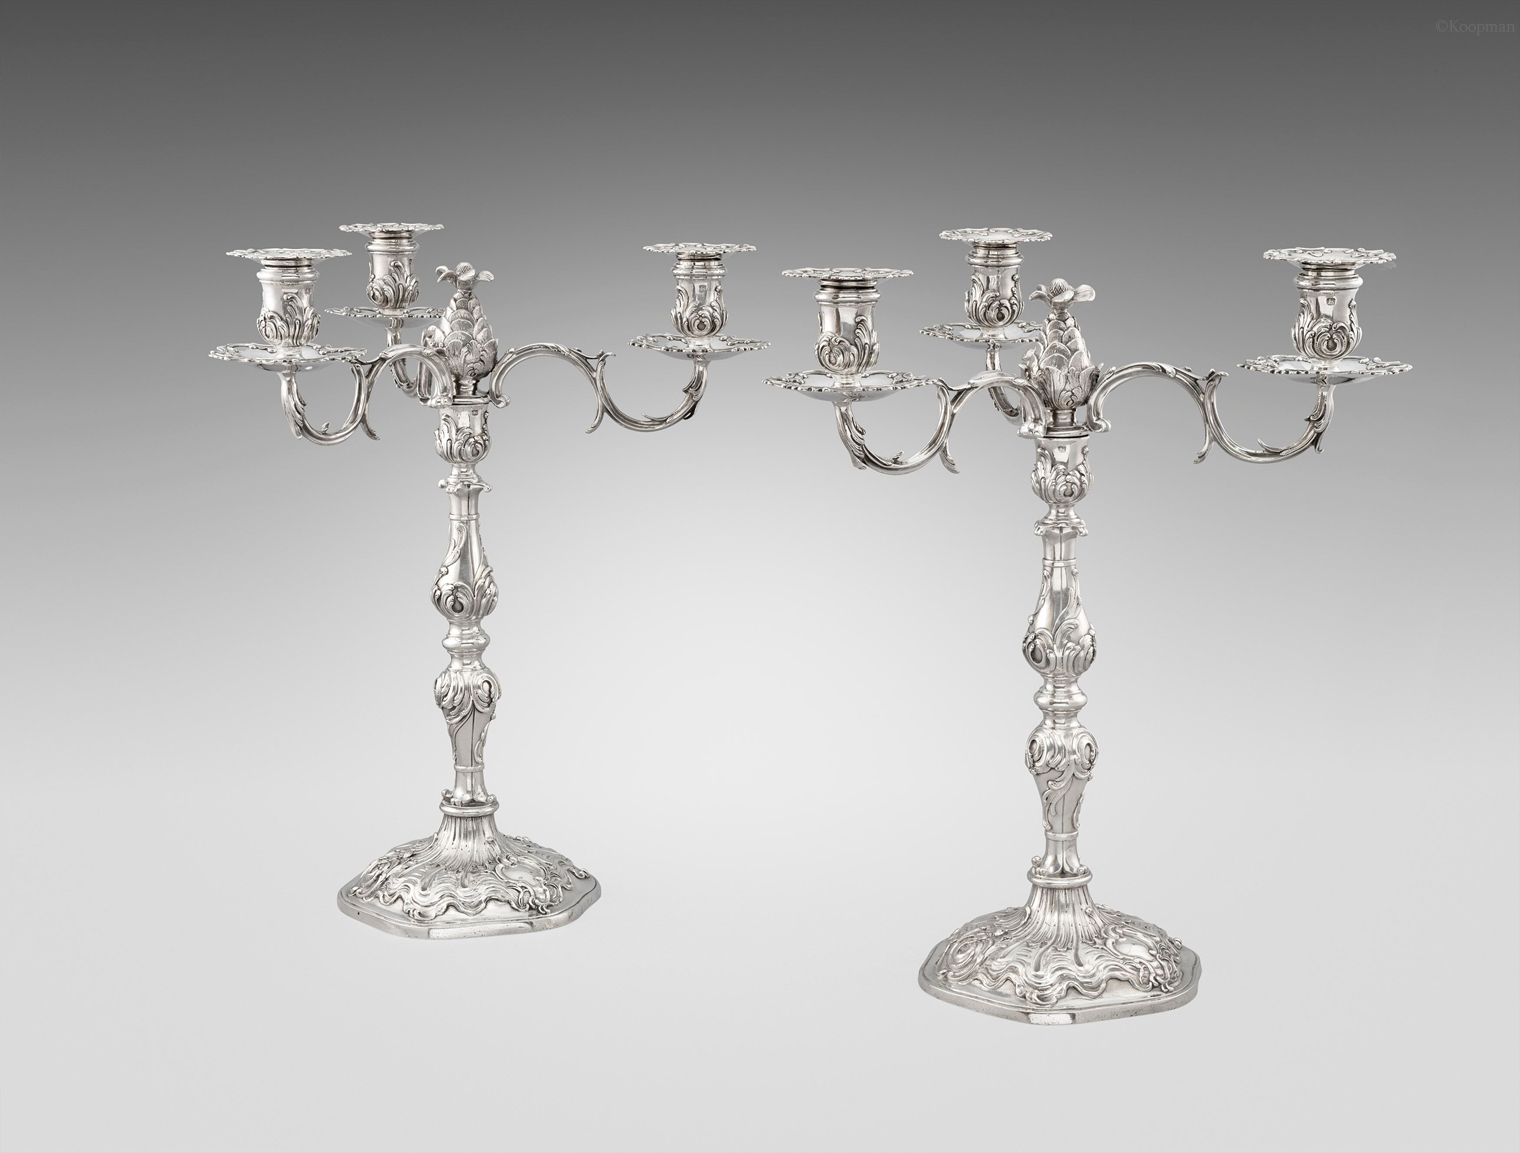 A Pair of George III Candelabra